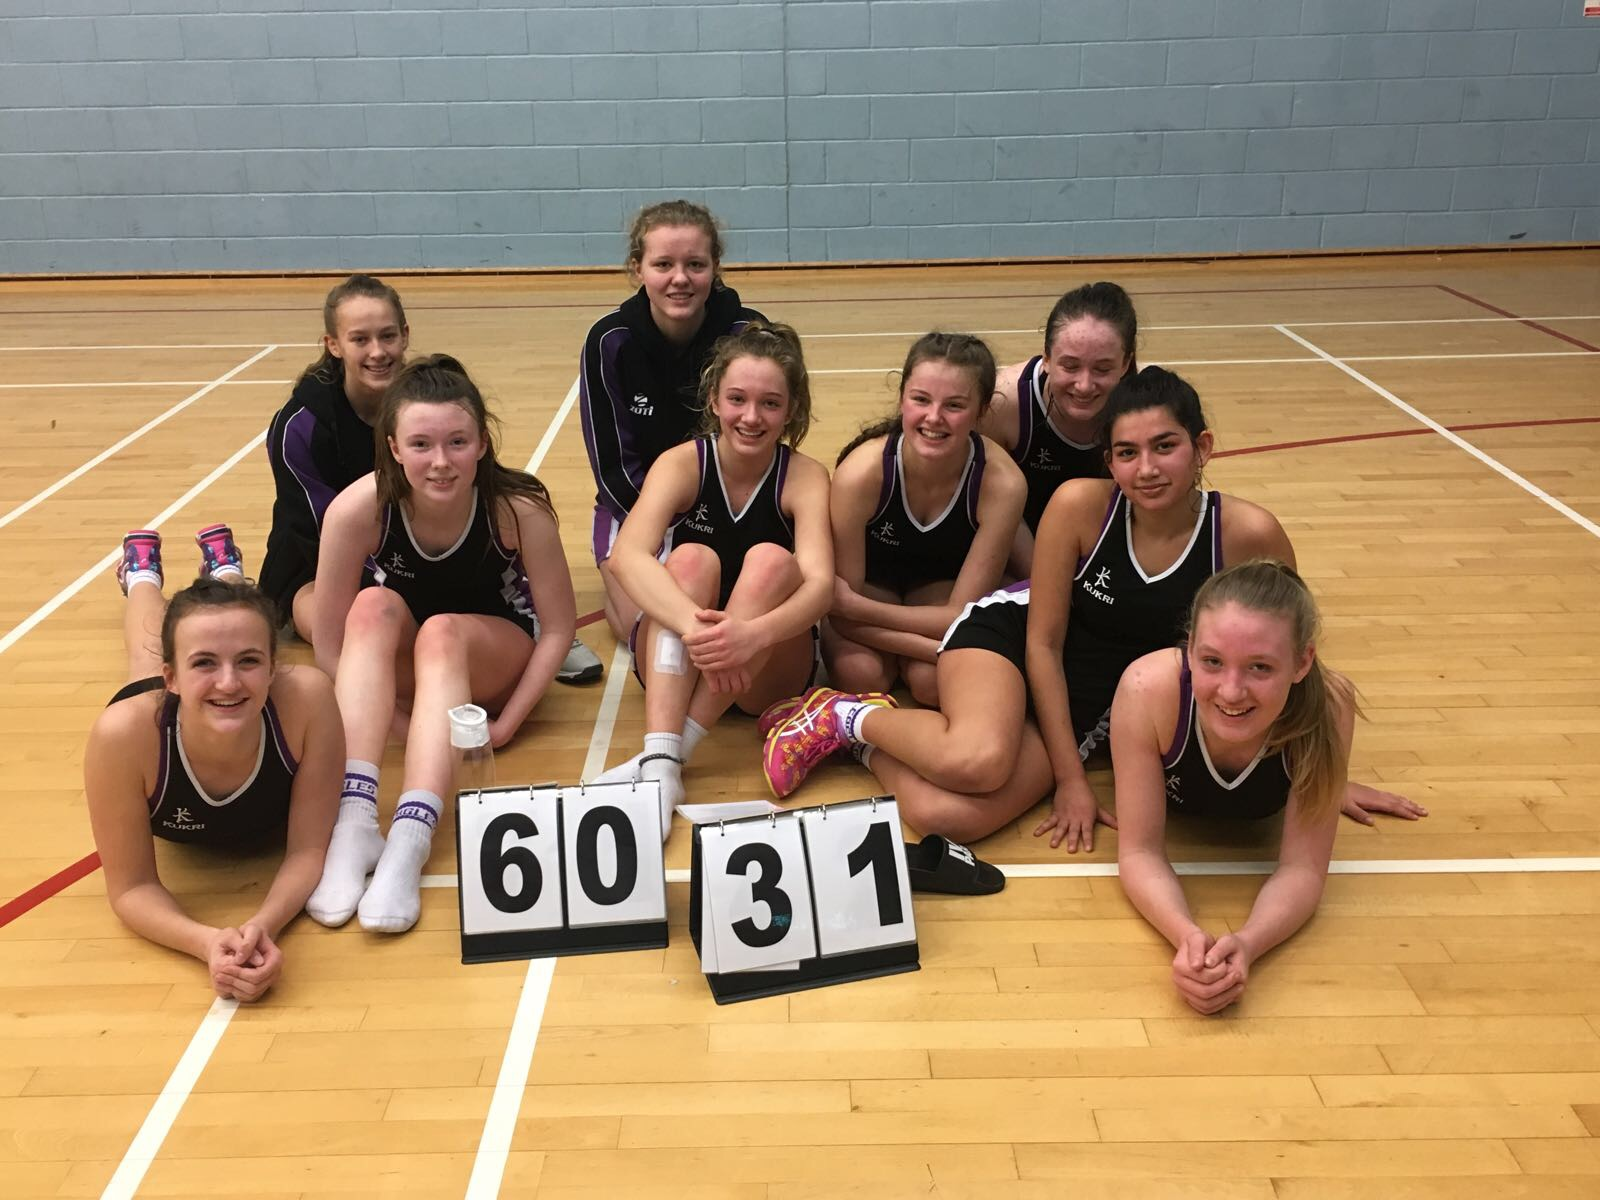 In the photo:   Front row from left:  Emily Secker (GS), Charlotte Jennings-Evans (GA), Chloe Duncan (C), Izzy Merrick (WD/GK), Maria Maier (WD/C) and Katie Fisher (GD).   Three in back from left : Olivia Treacy (GK), Kate Godsmark (GS), Abbie Watson (WA)